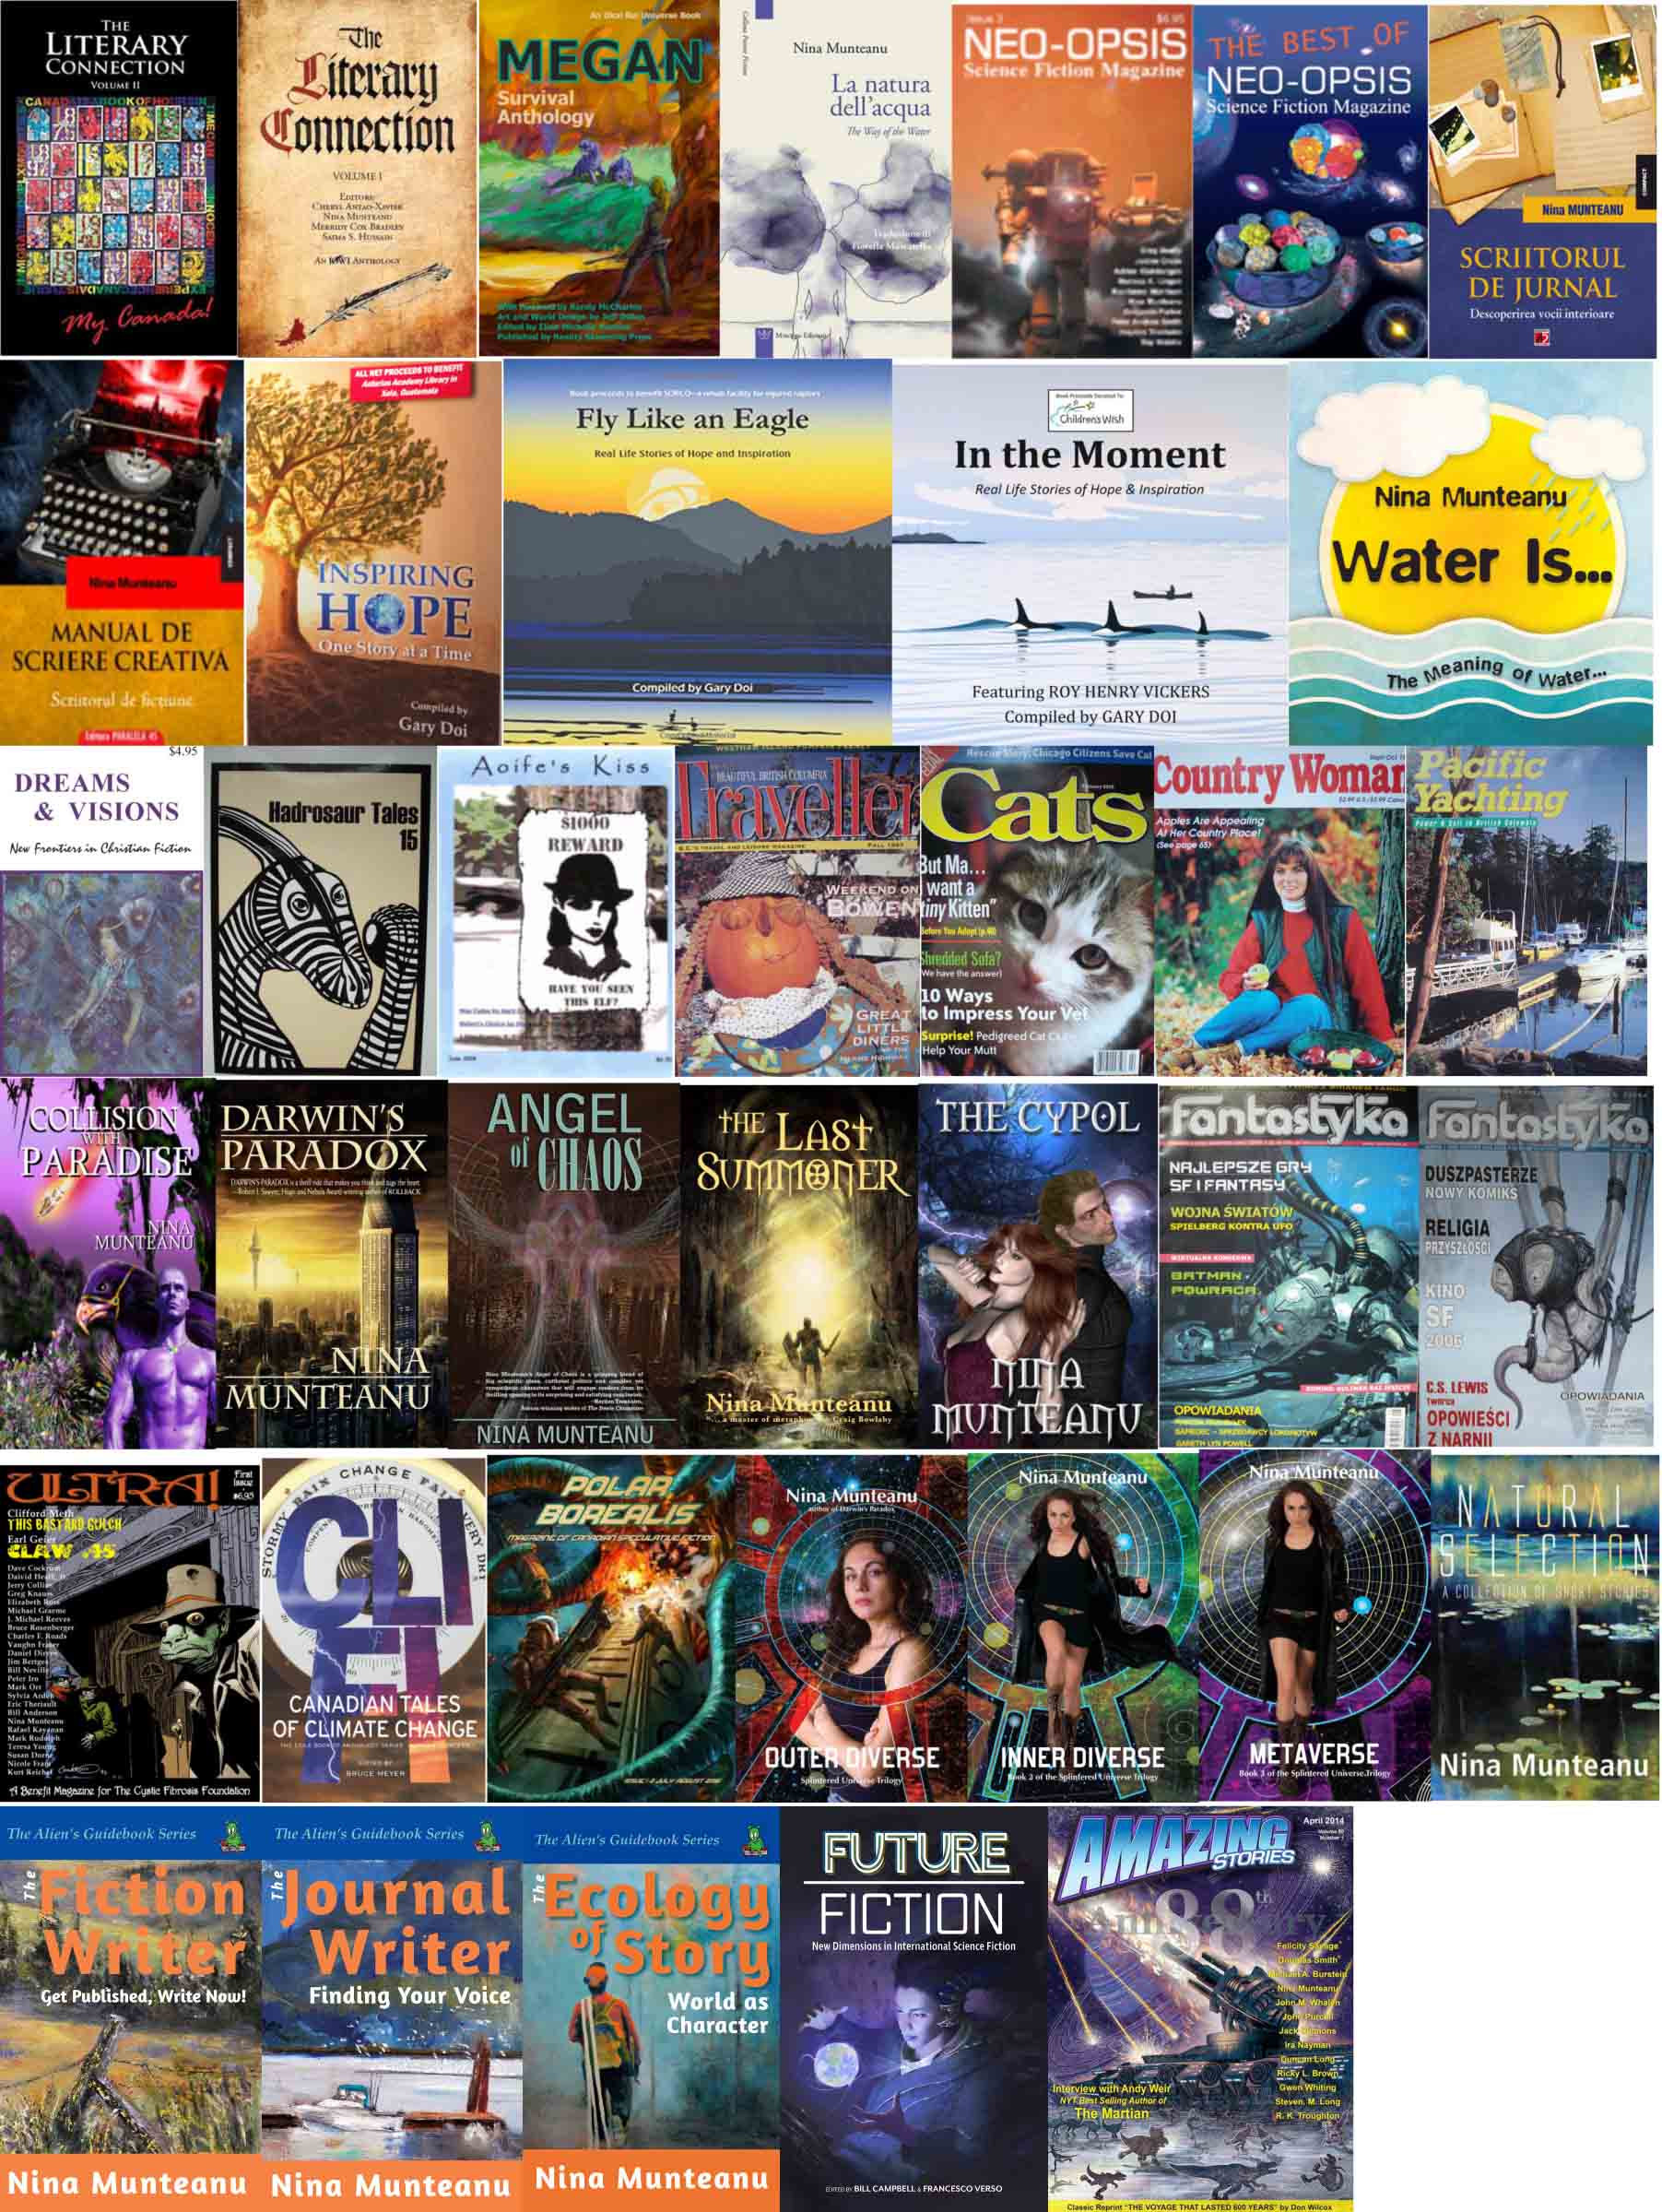 Microsoft Word - Publication-COVERS-all-2018.docx